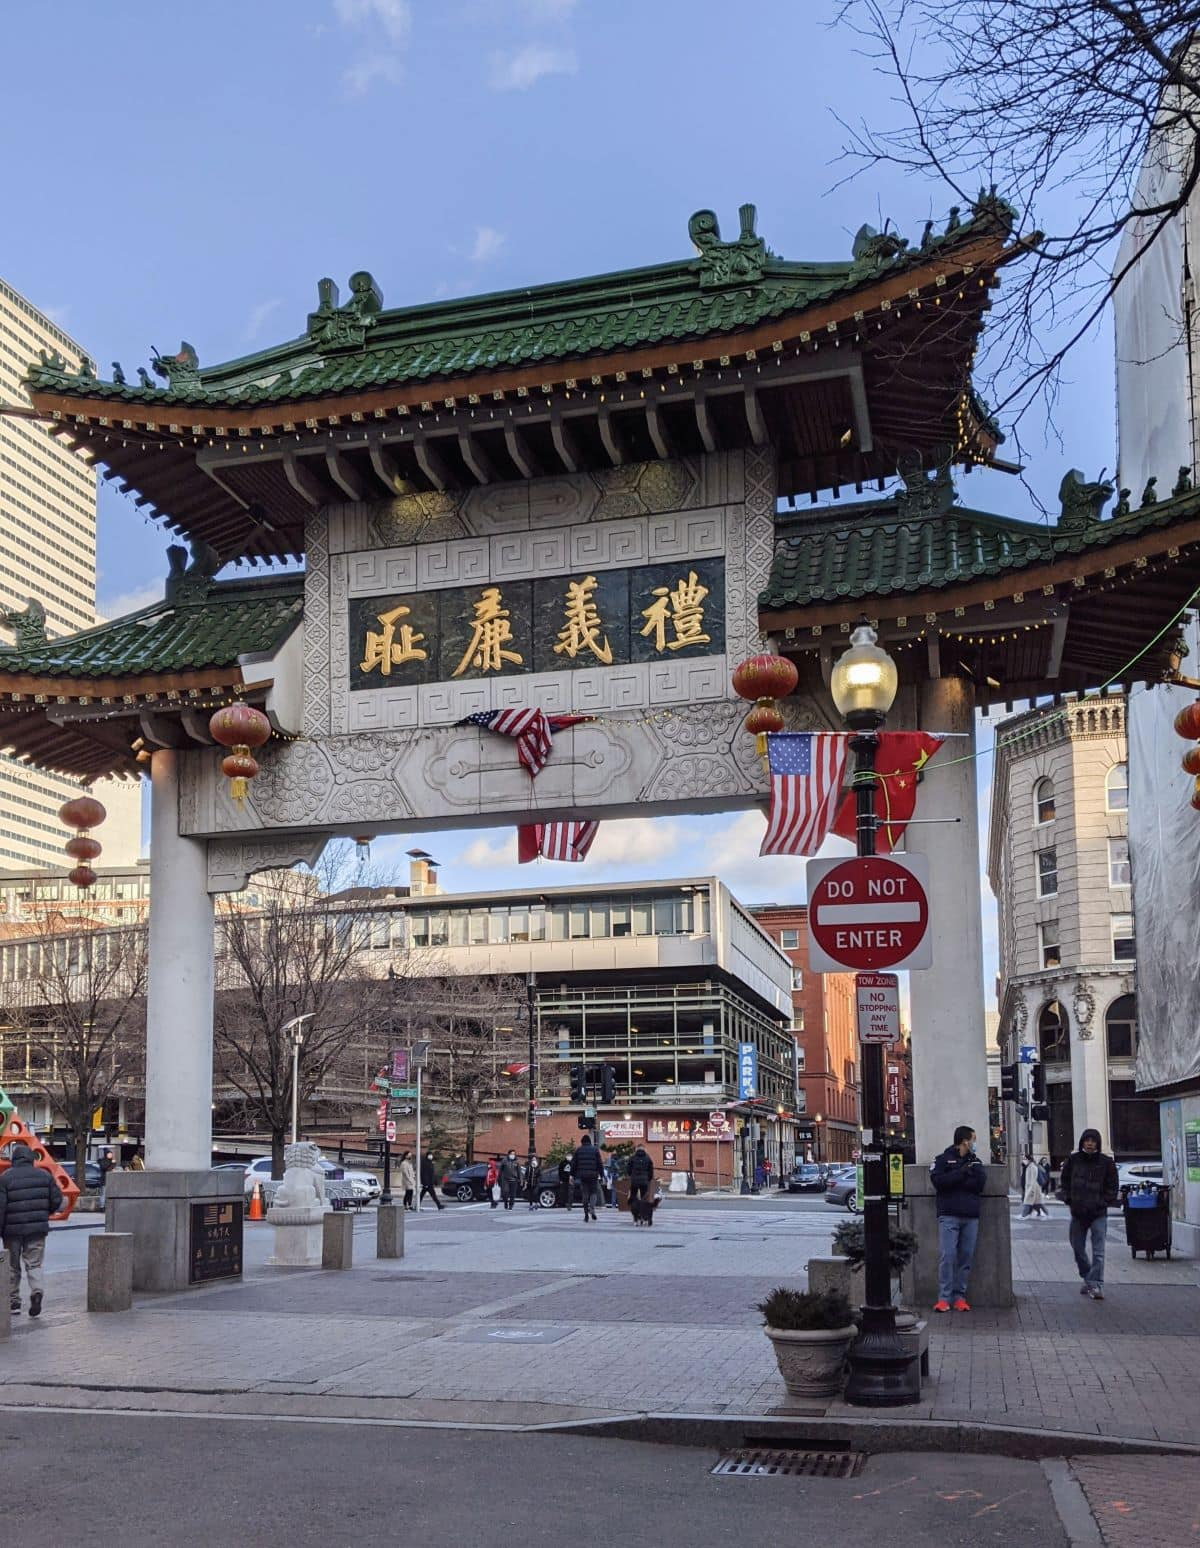 the Chinatown gate in Boston